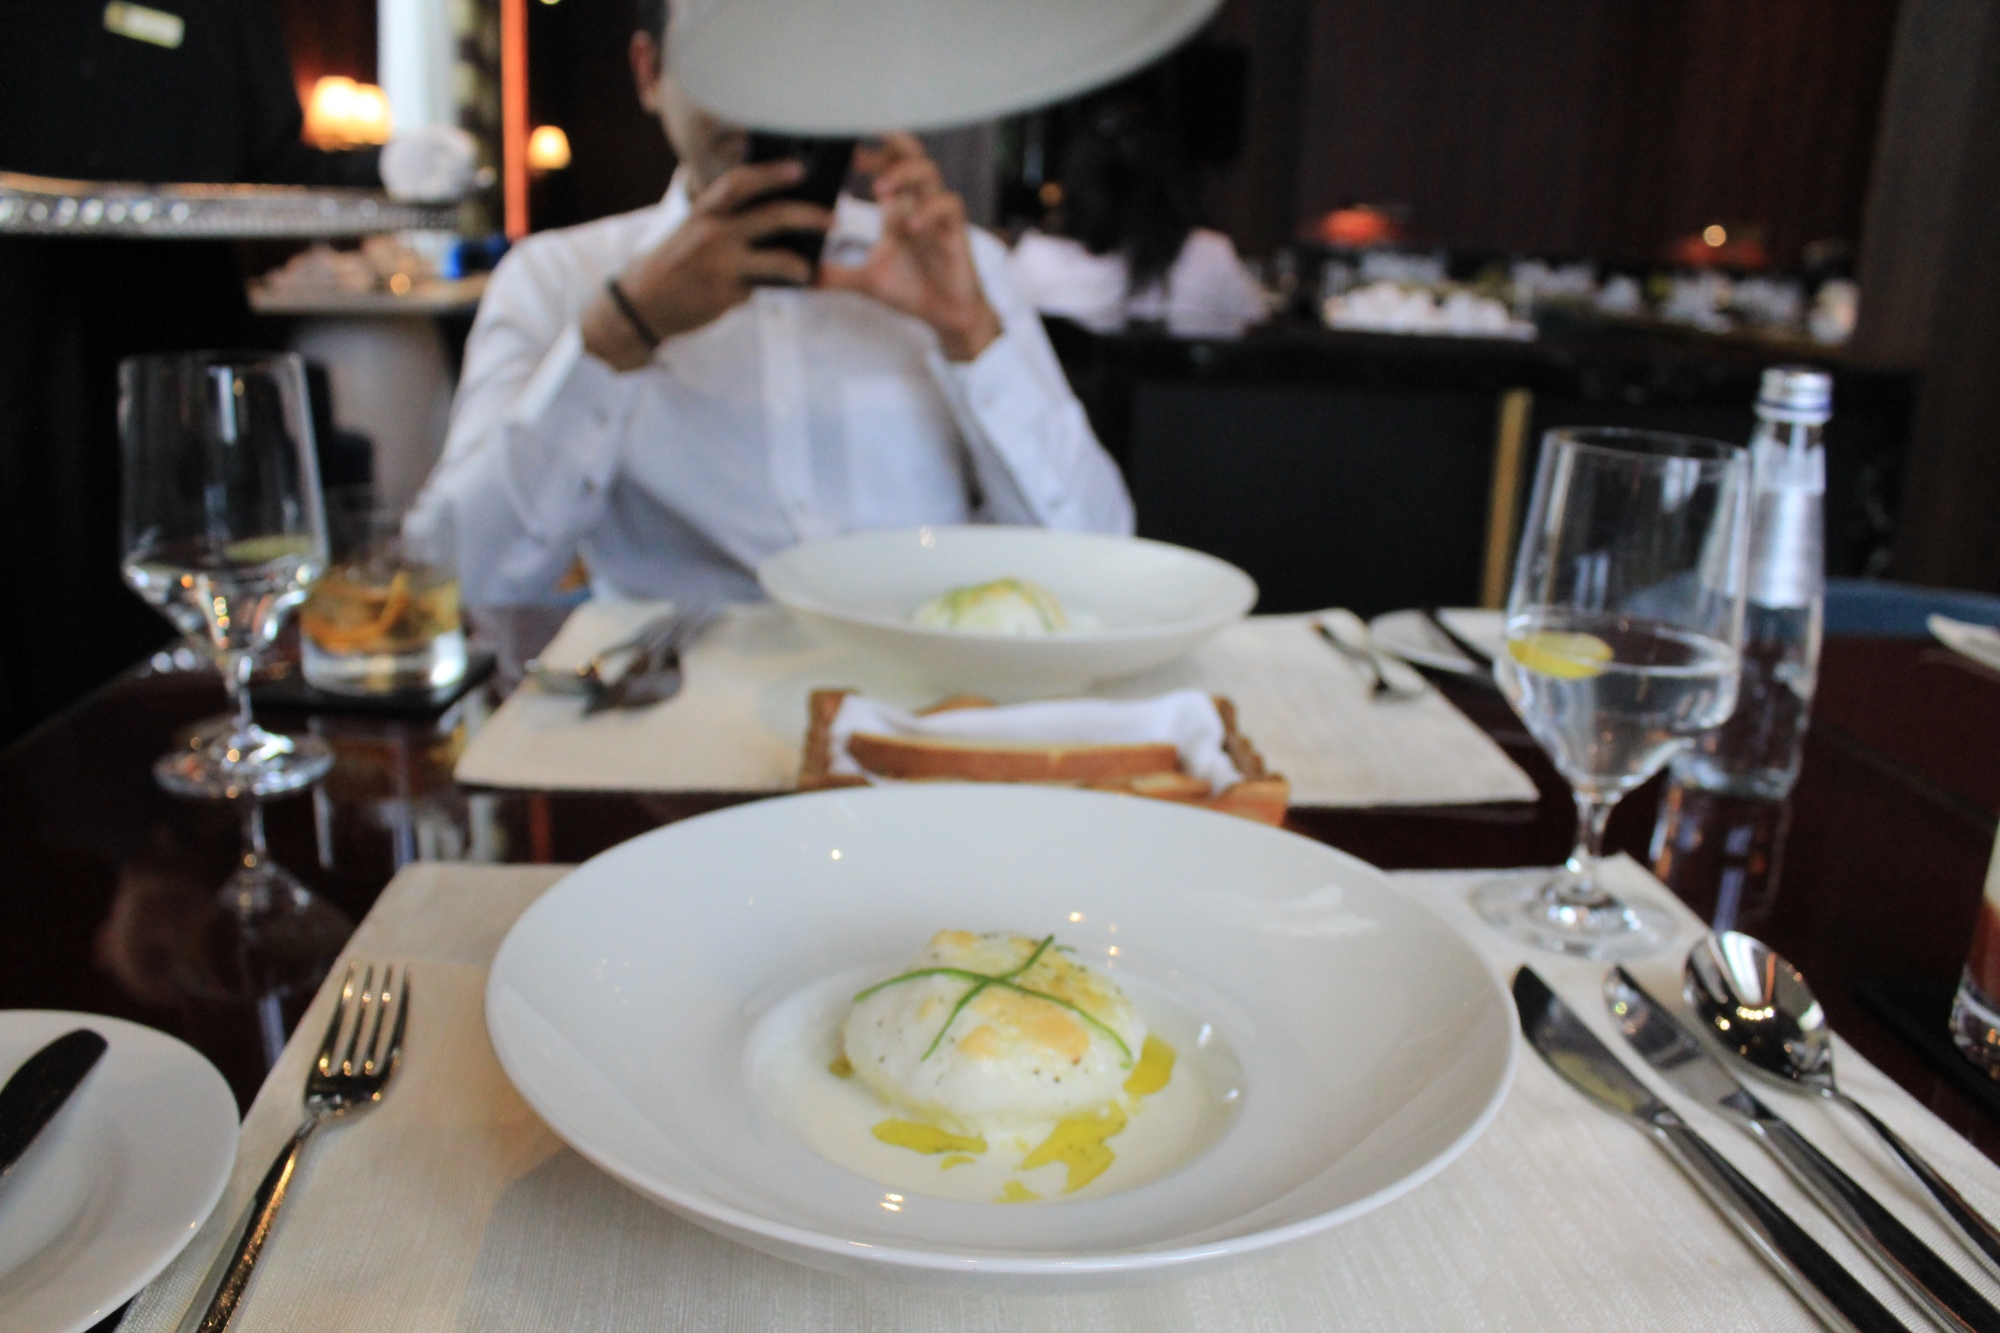 Brie and Truffle Soufflé Hemant Oberoi